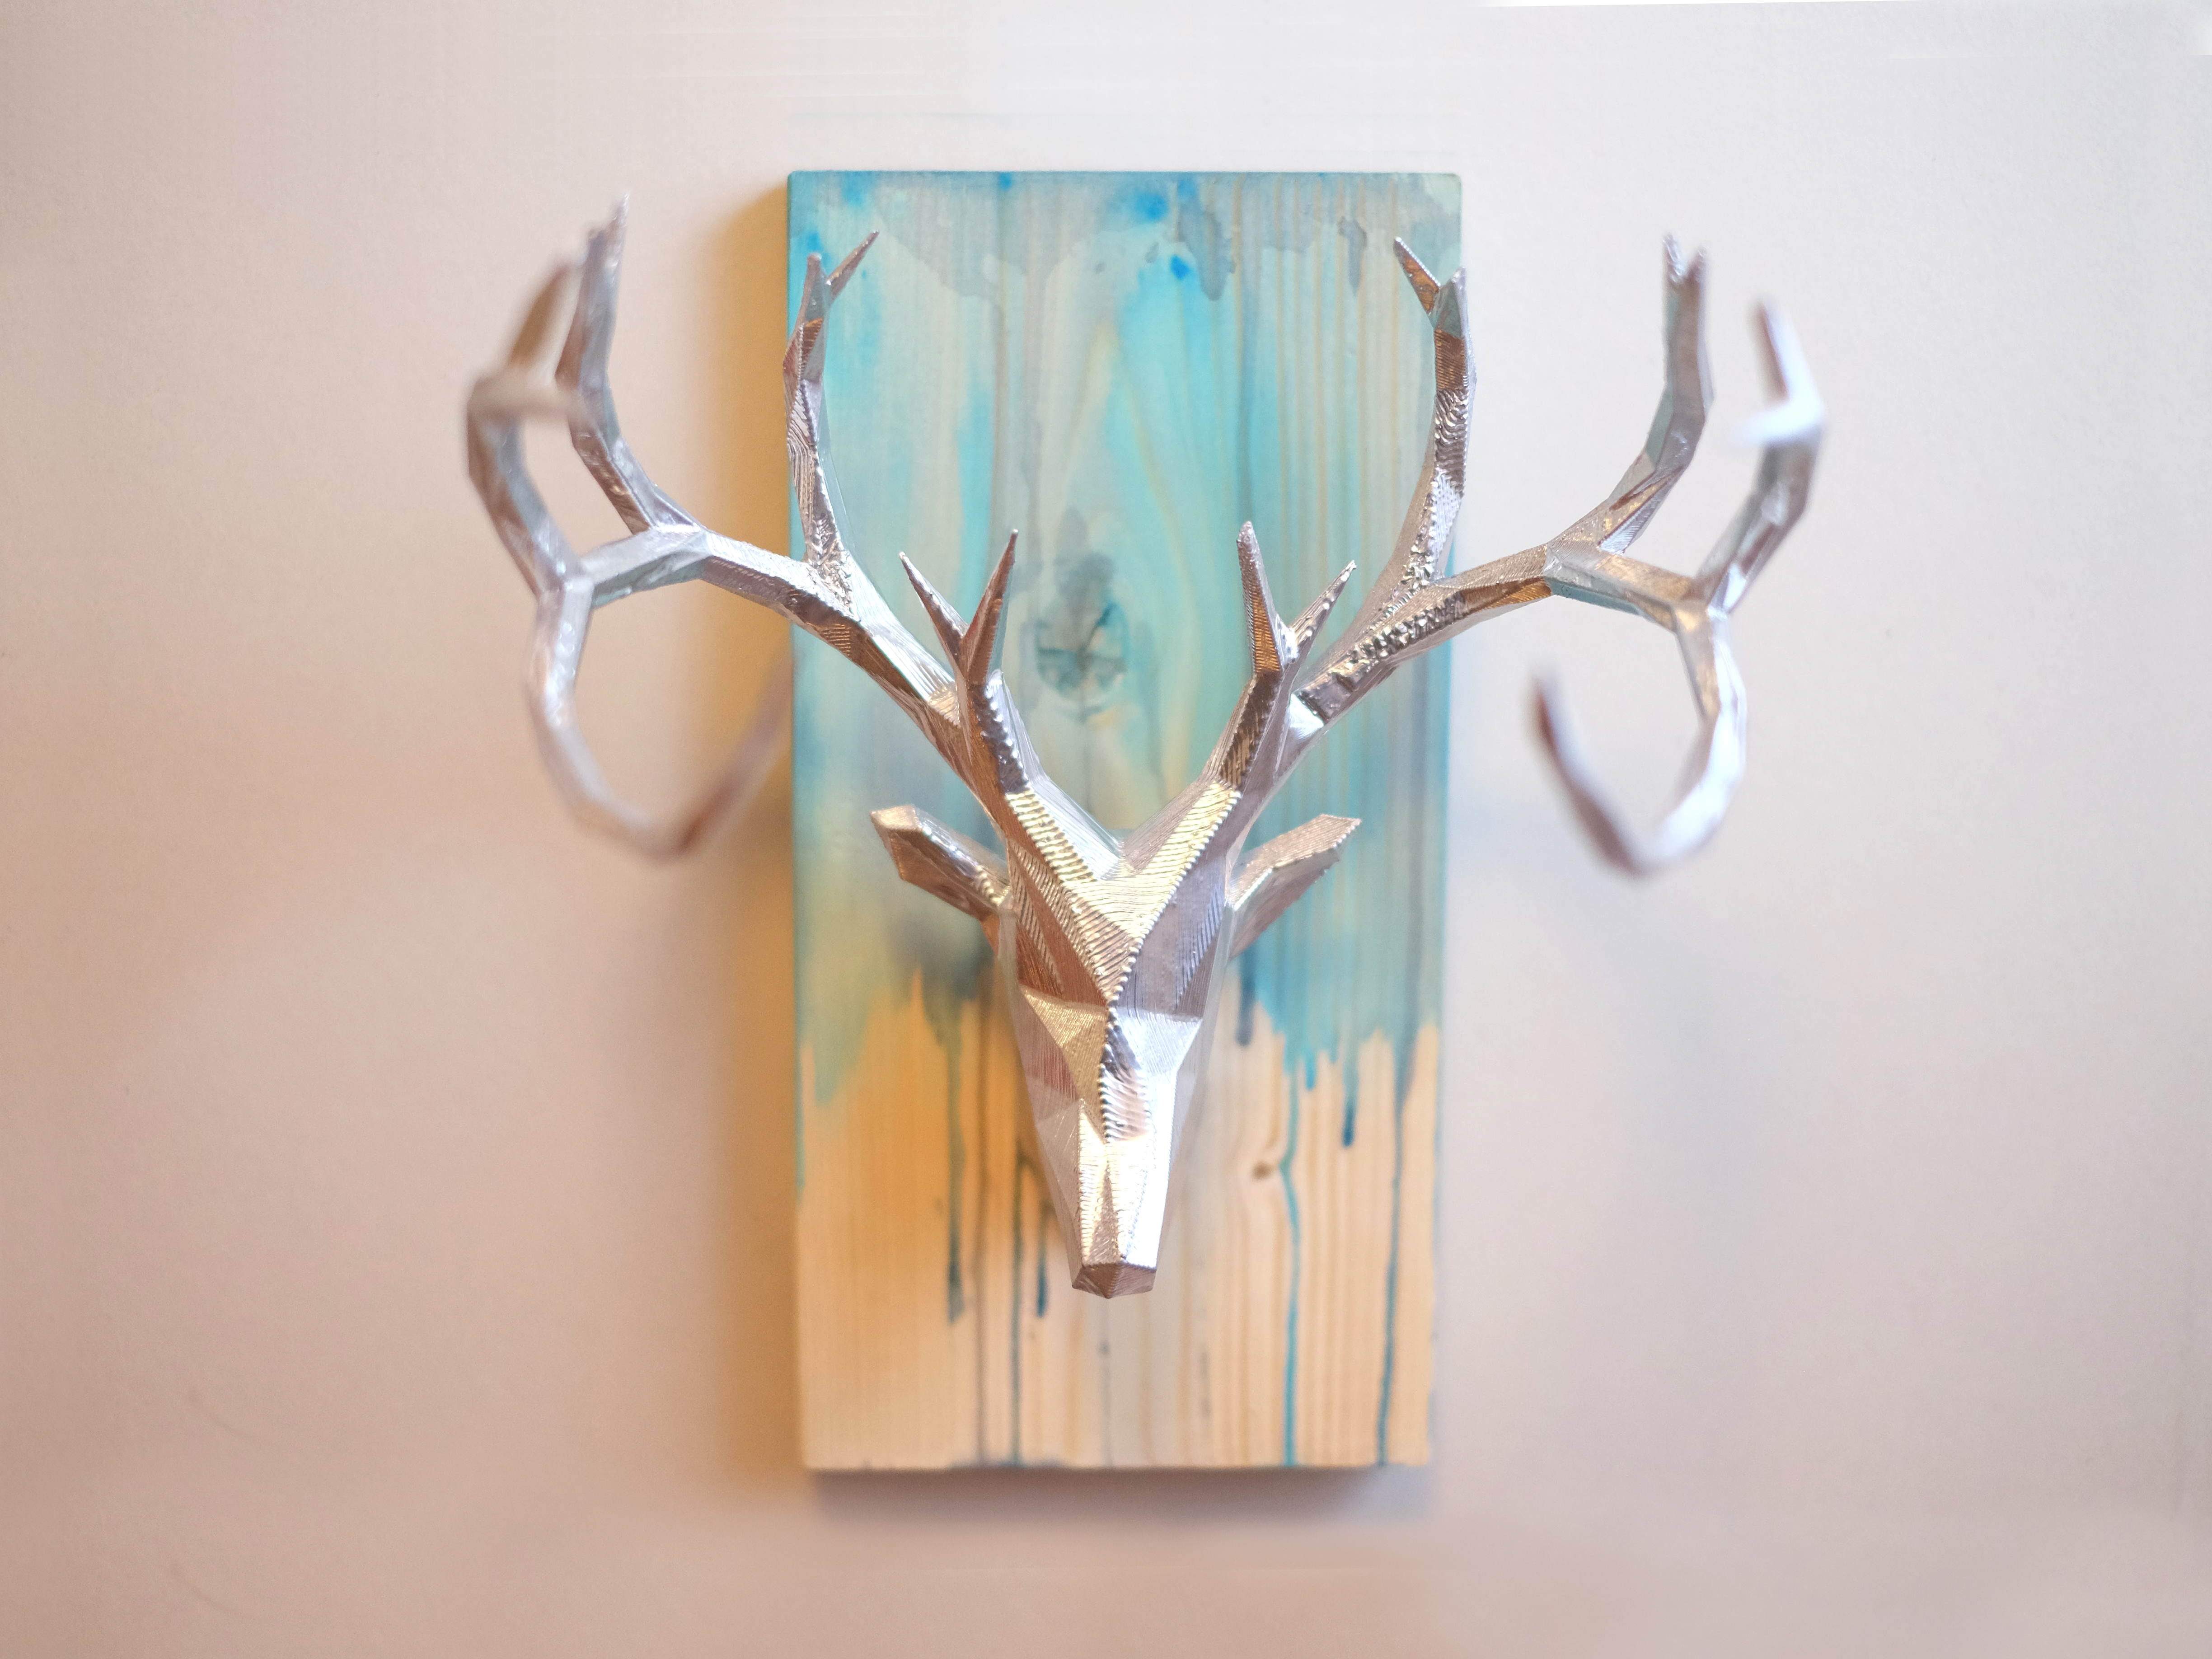 3D print & wood faceted deer & Texas wall art - evanandkatelyn.com